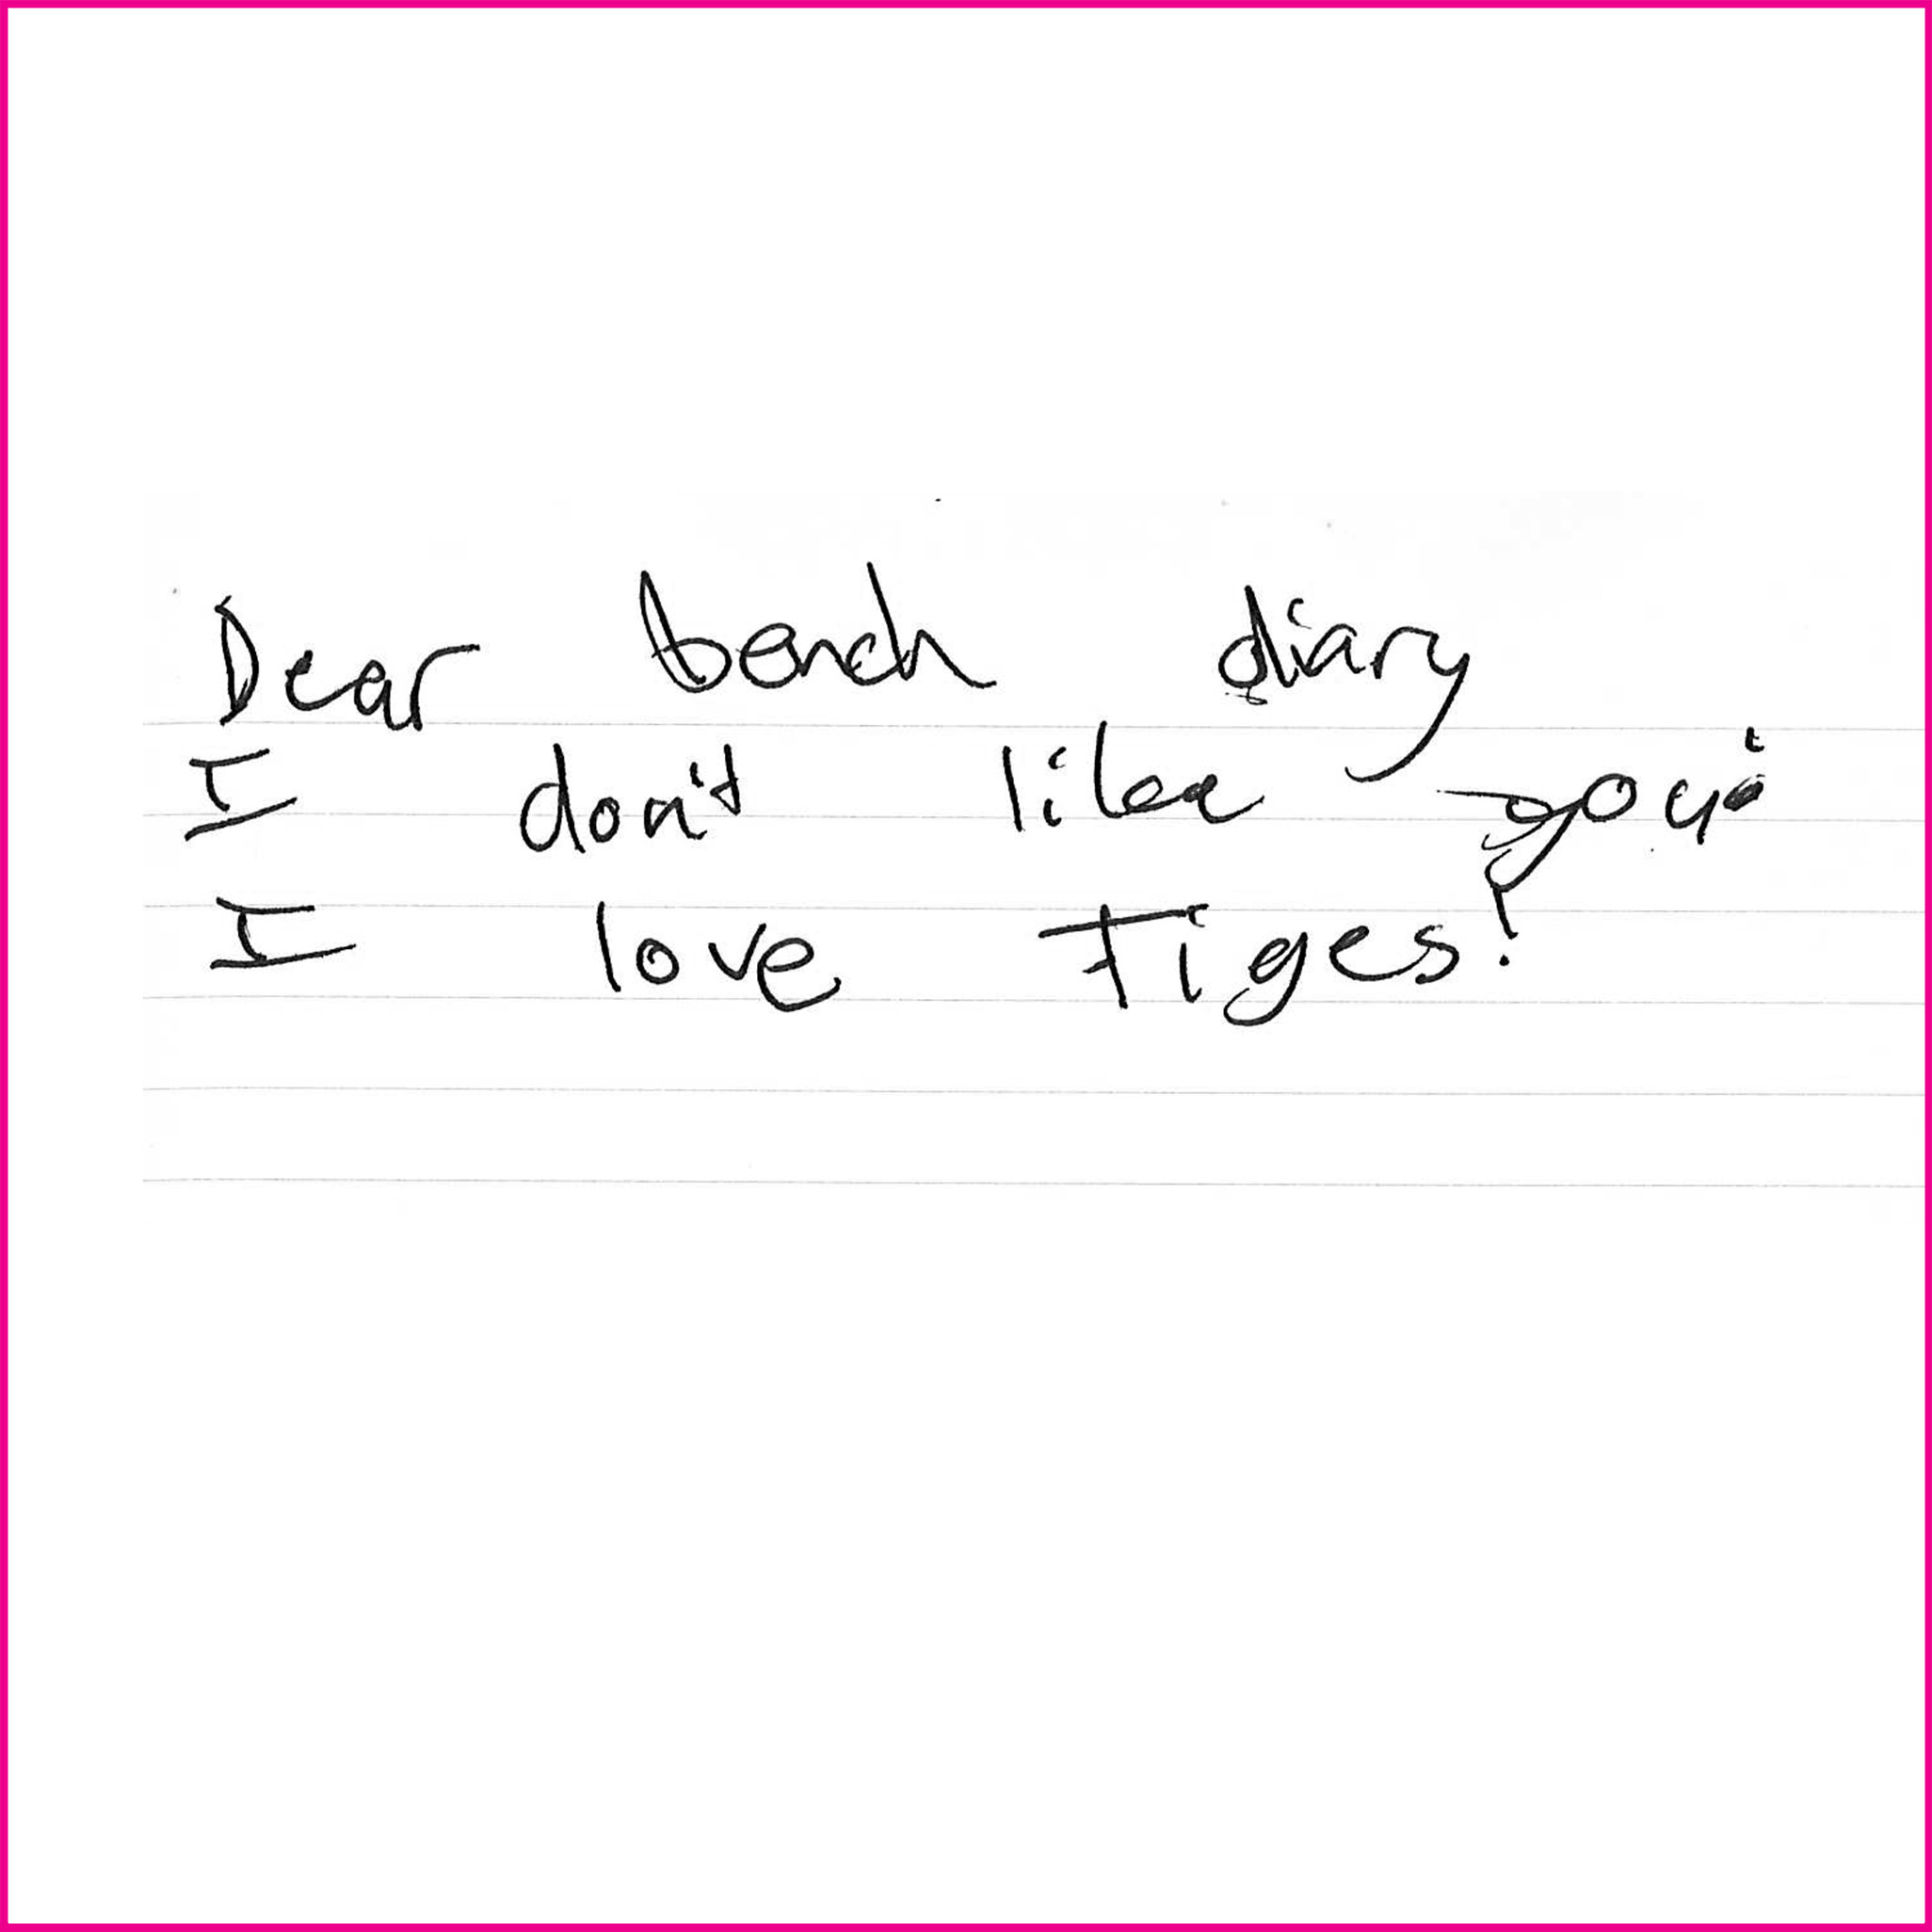 Dear bench diary  I don't like you  I love Tiges!